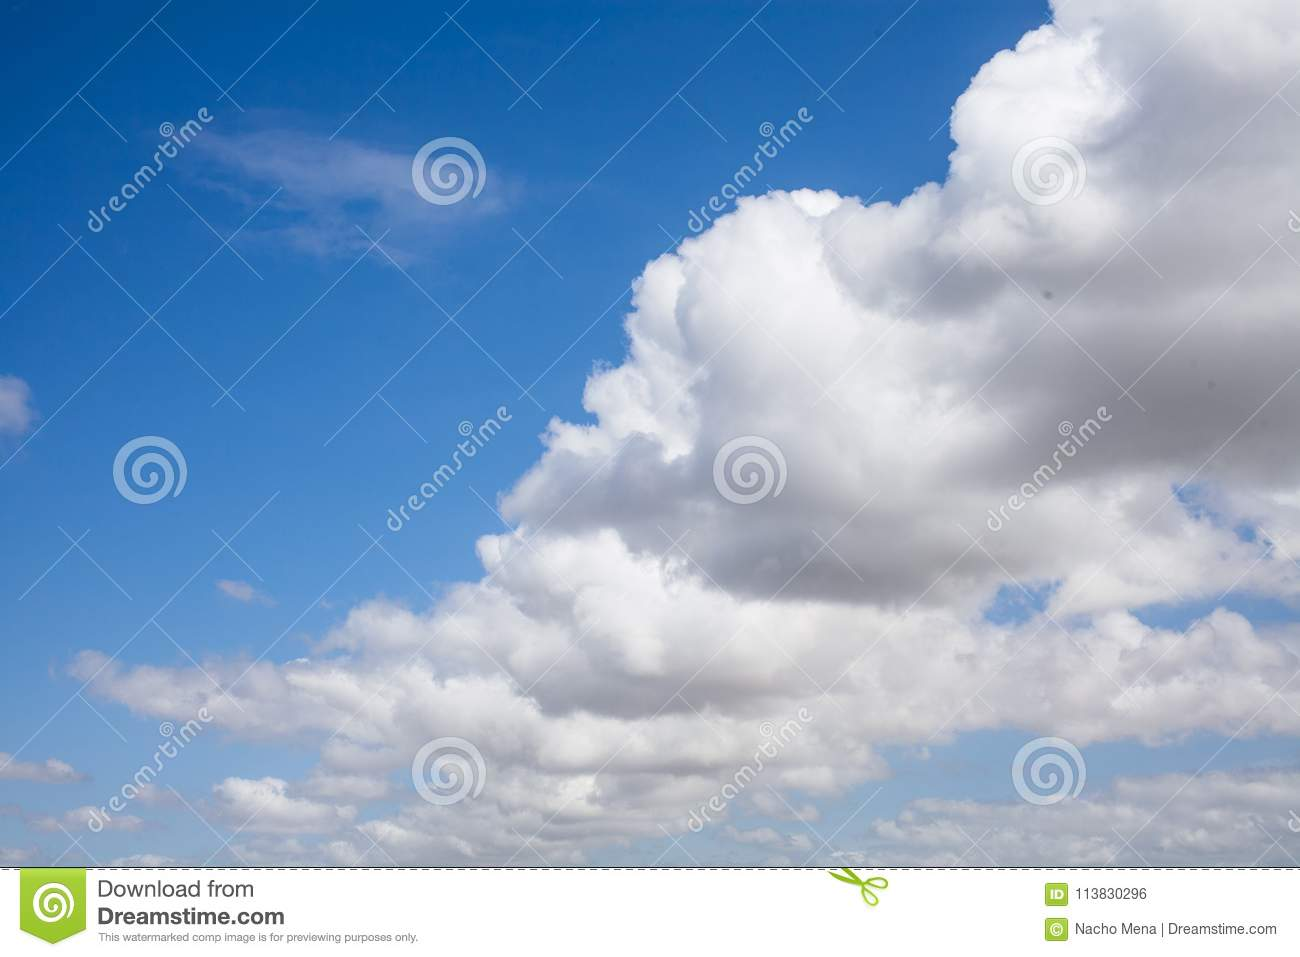 Cloudscape background. Blue sky background with white clouds. Sky after raining. Close up view of beautiful blue sky background.